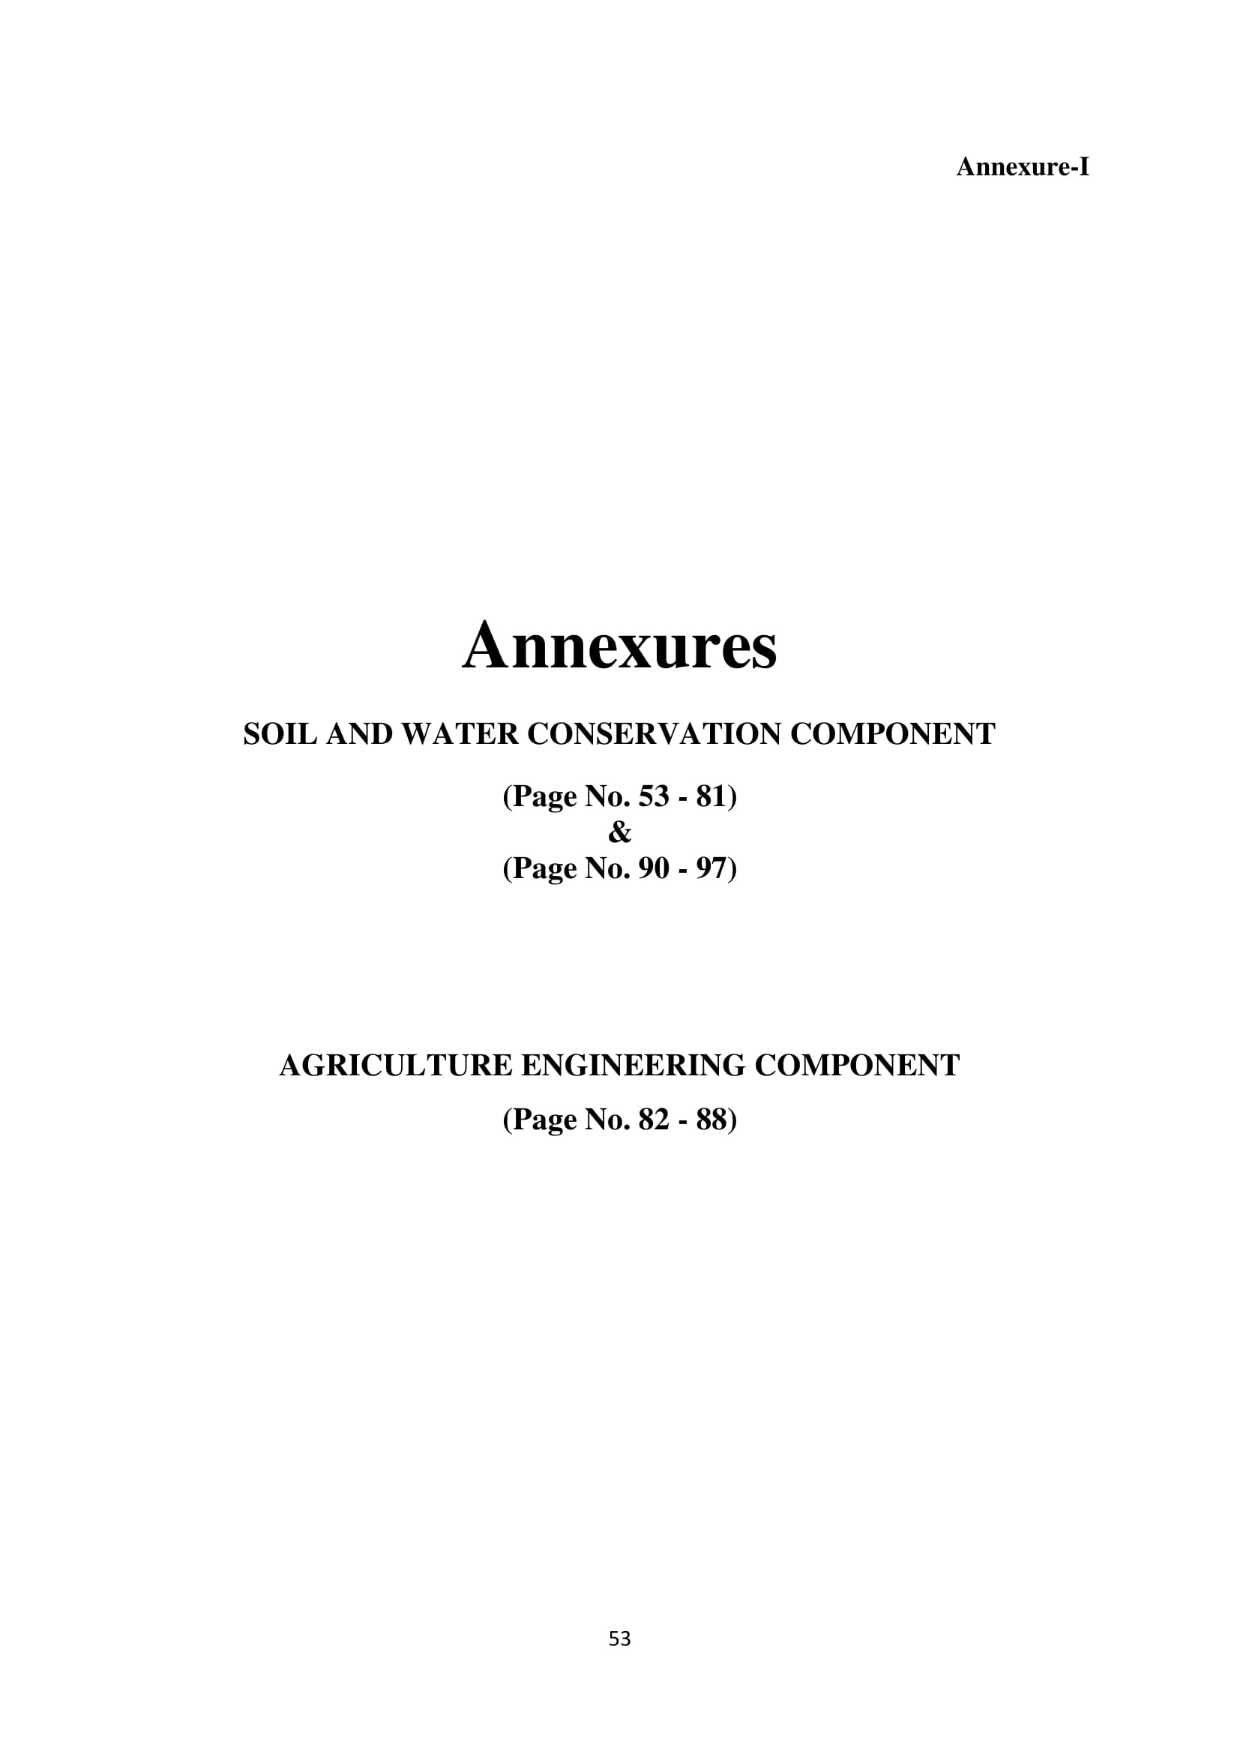 FINAL_ANNEXURES_FINAL_SWC_DAE_Final_annexures_April_24__2019-01